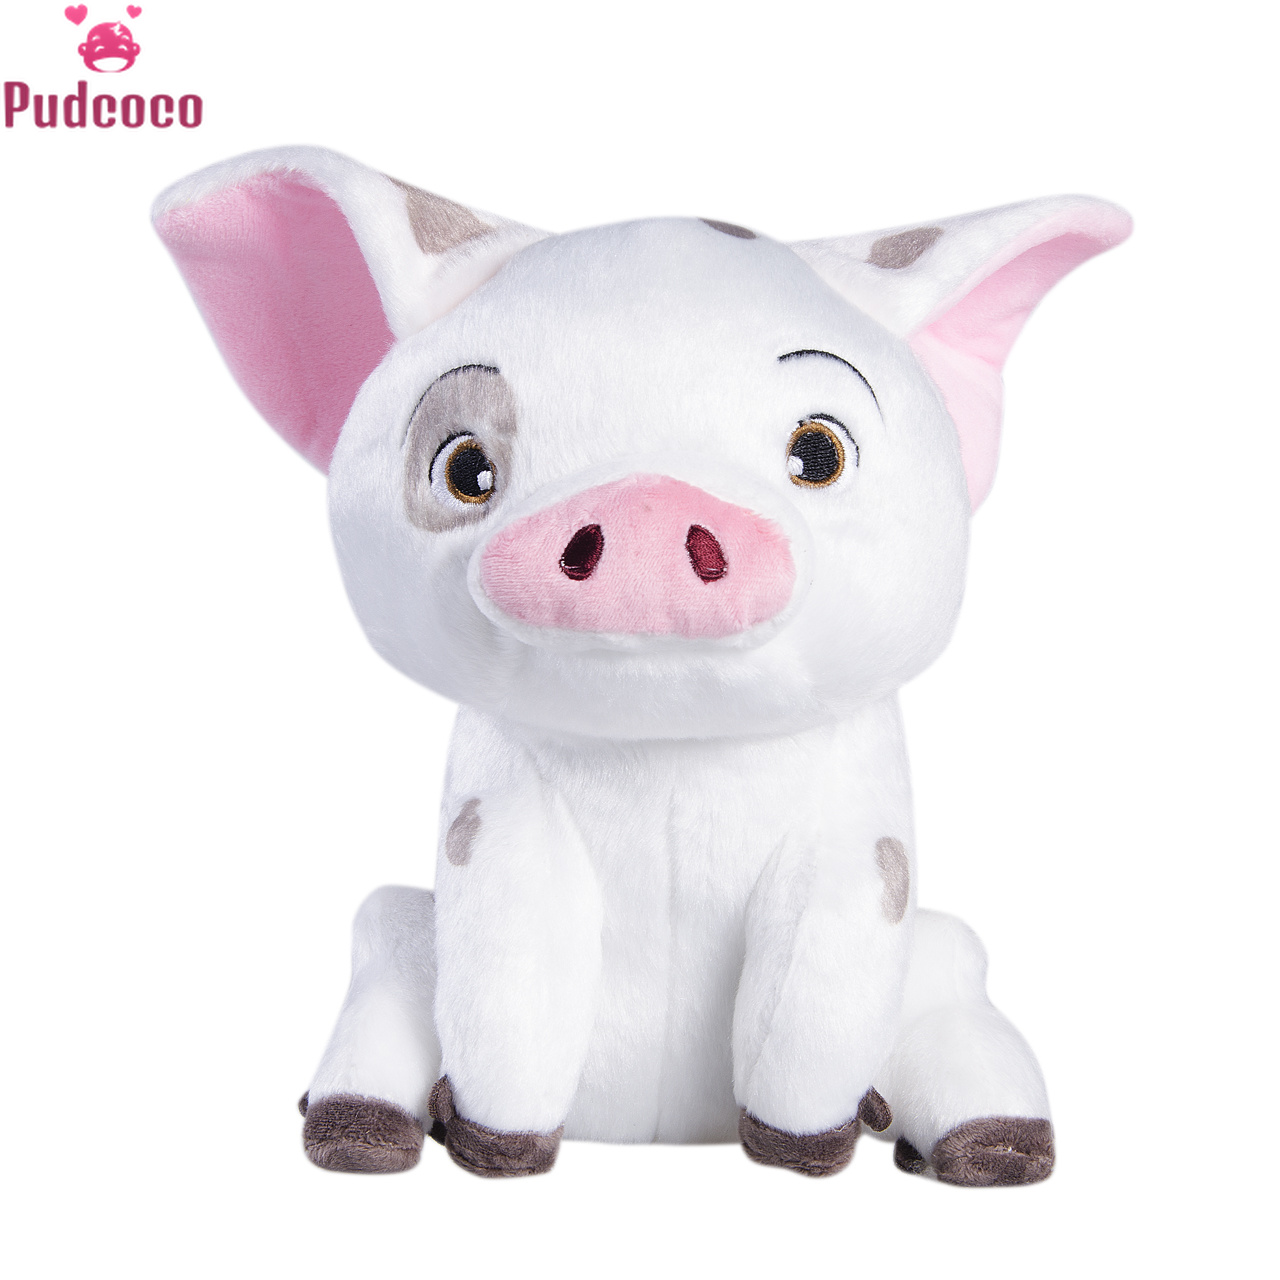 22cm Movie Moana Pet Pig Pua Animals Plush Toys For Baby Girls Stuffed Plush Doll Kids Baby Soft Toy Birthday Gift